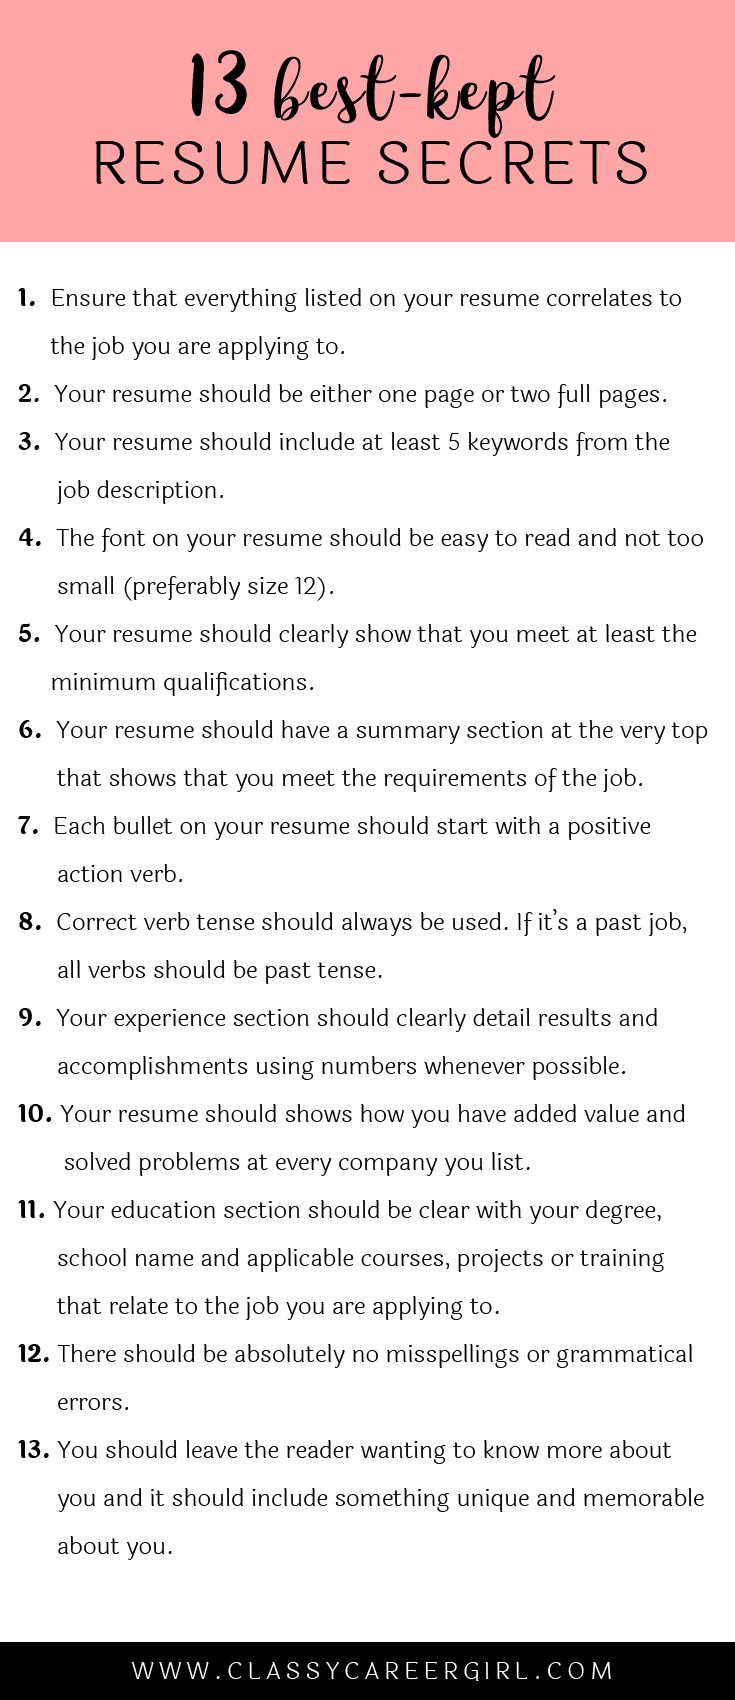 Opposenewapstandardsus  Pretty  Ideas About Resume On Pinterest  Cv Format Resume Cv And  With Entrancing Some Hiring Managers Will Toss Your Resume Out If You Dont Know These  With Amazing Resume Design Inspiration Also Wedding Planner Resume In Addition Example Of College Resume And Gpa Resume As Well As Technical Theatre Resume Additionally Sales Job Resume From Pinterestcom With Opposenewapstandardsus  Entrancing  Ideas About Resume On Pinterest  Cv Format Resume Cv And  With Amazing Some Hiring Managers Will Toss Your Resume Out If You Dont Know These  And Pretty Resume Design Inspiration Also Wedding Planner Resume In Addition Example Of College Resume From Pinterestcom